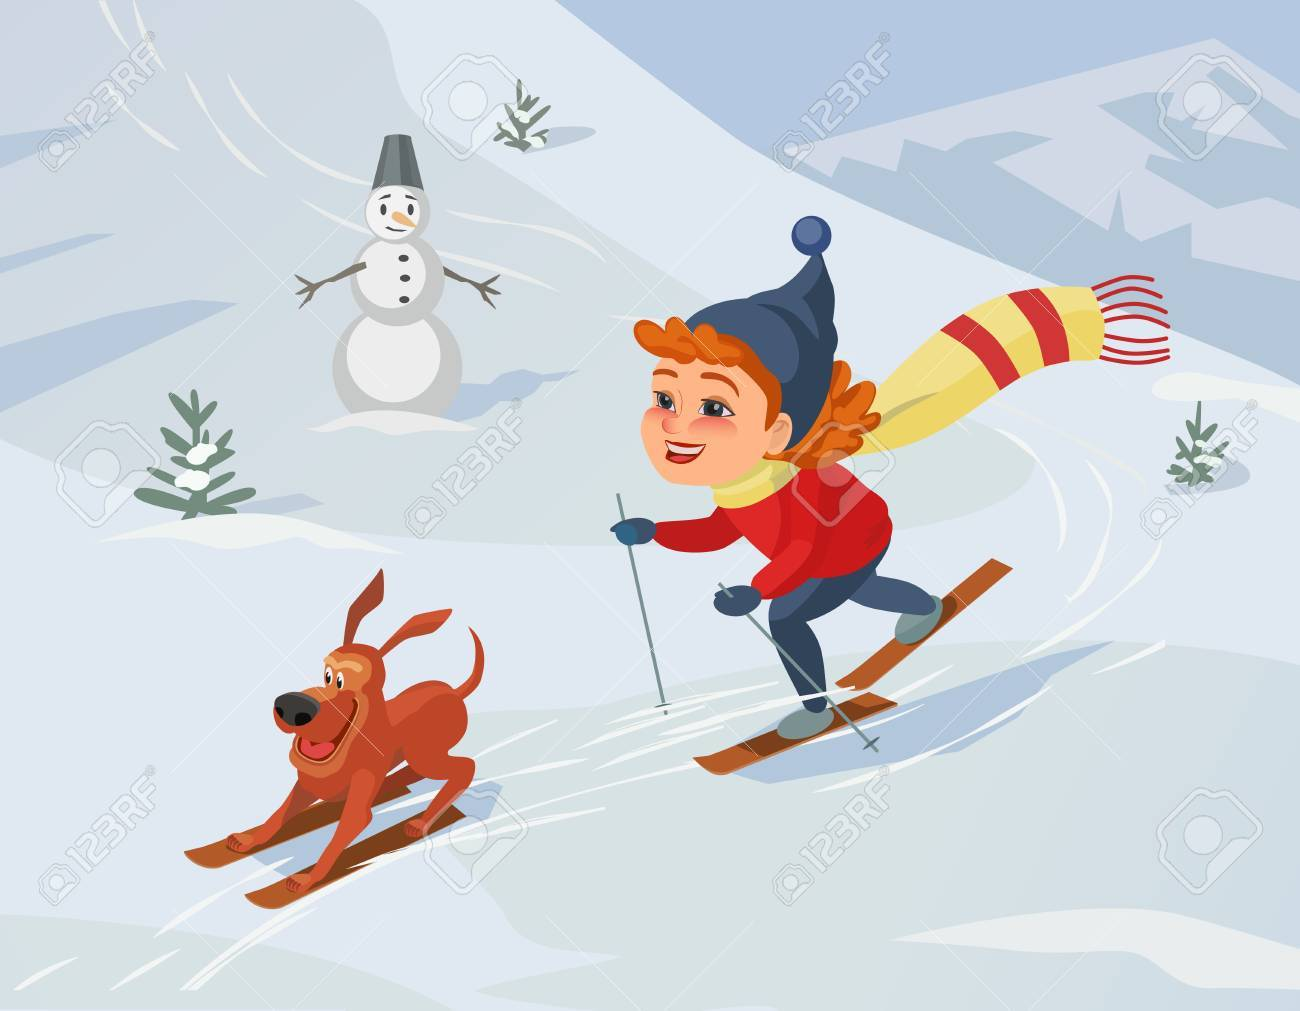 winter outdoors concept. cartoon fancy retro style poster. skiing